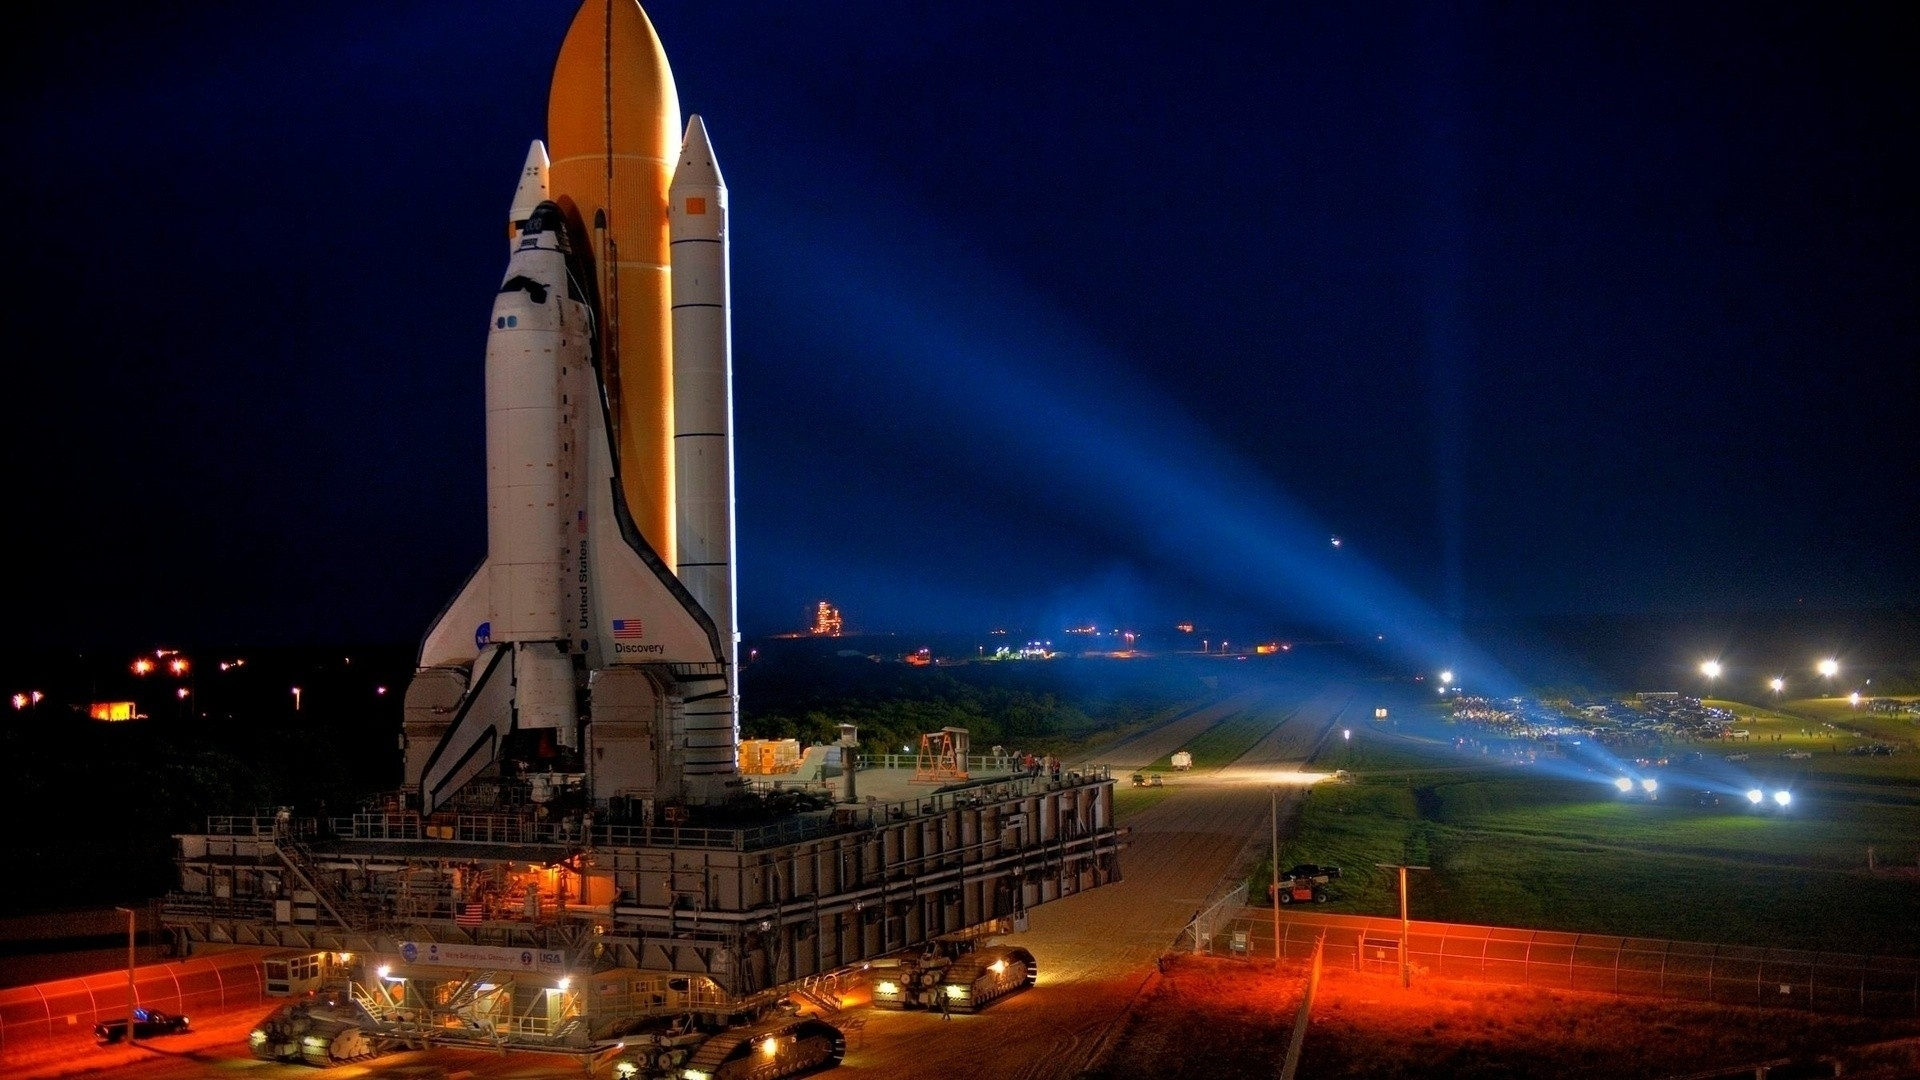 Nasa launch pad space shuttle discovery wallpaper - Nasa space shuttle wallpaper ...